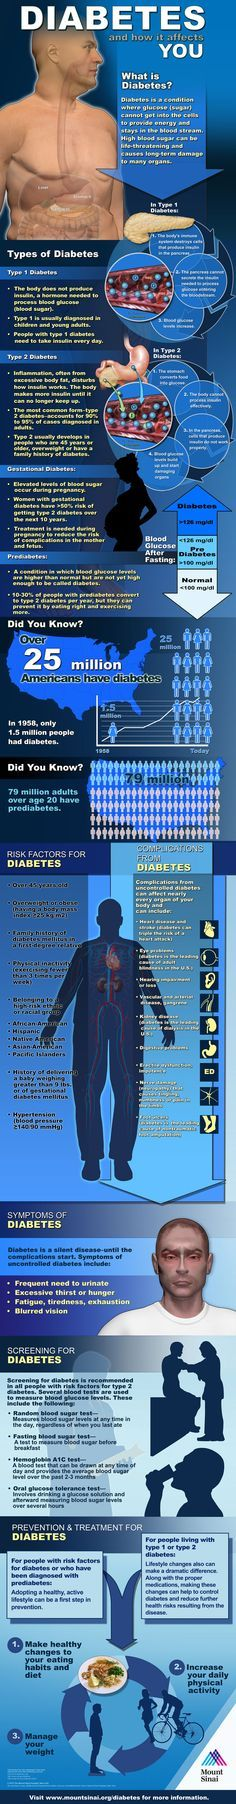 Diabetes And How It Affects You Infographic http://www.ahealthblog.com/diabetes-and-how-it-affects-you-infographic-1.html?utm_content=bufferc93ff&utm_medium=social&utm_source=pinterest.com&utm_campaign=buffer  #diabetes #health #infographic